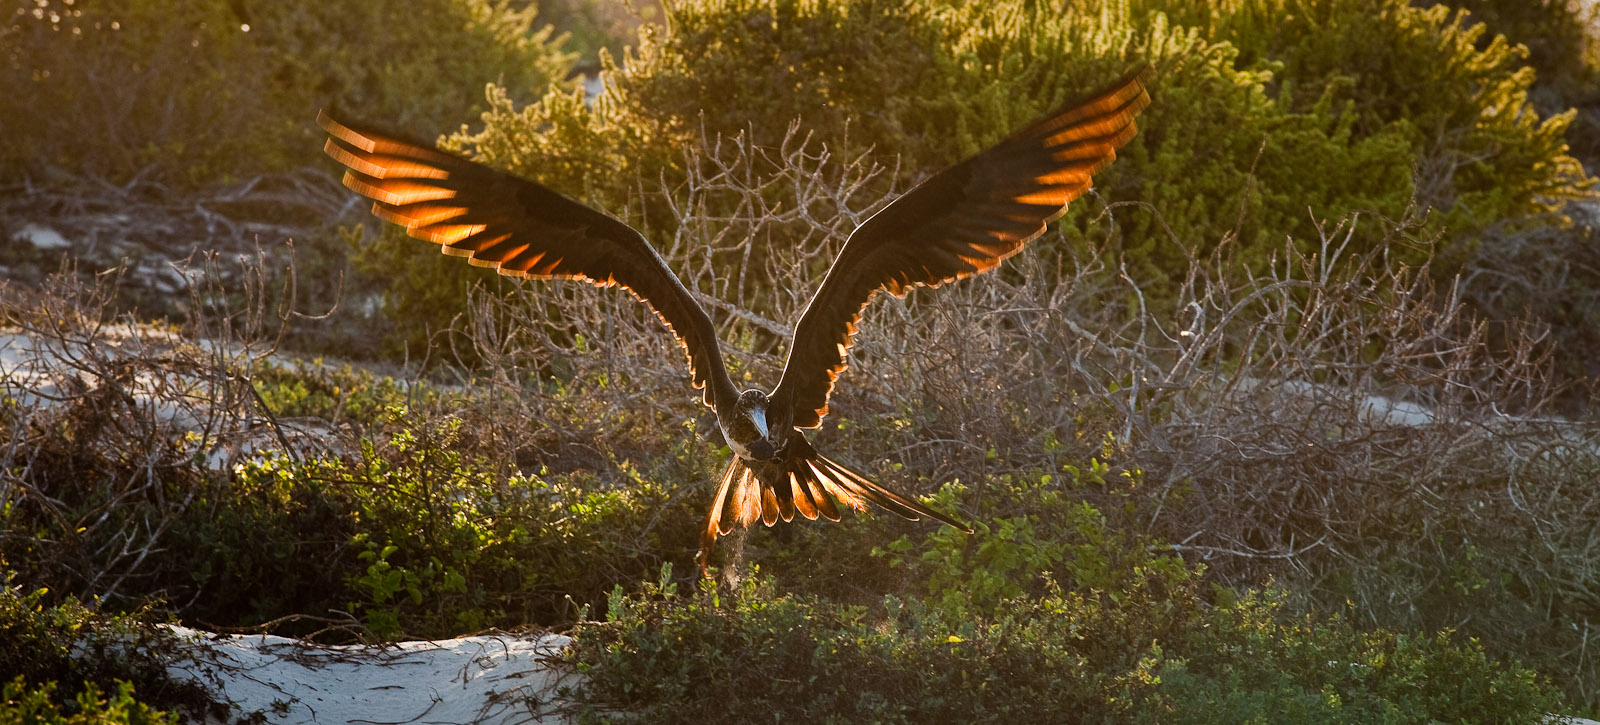 Floreana Island in the Galapagos is the home to sea turtles who are the prey of the frigate birds. This site is just over a rise from the lagoon where you'll find Pink Flamingos. Photo by Jay Graham